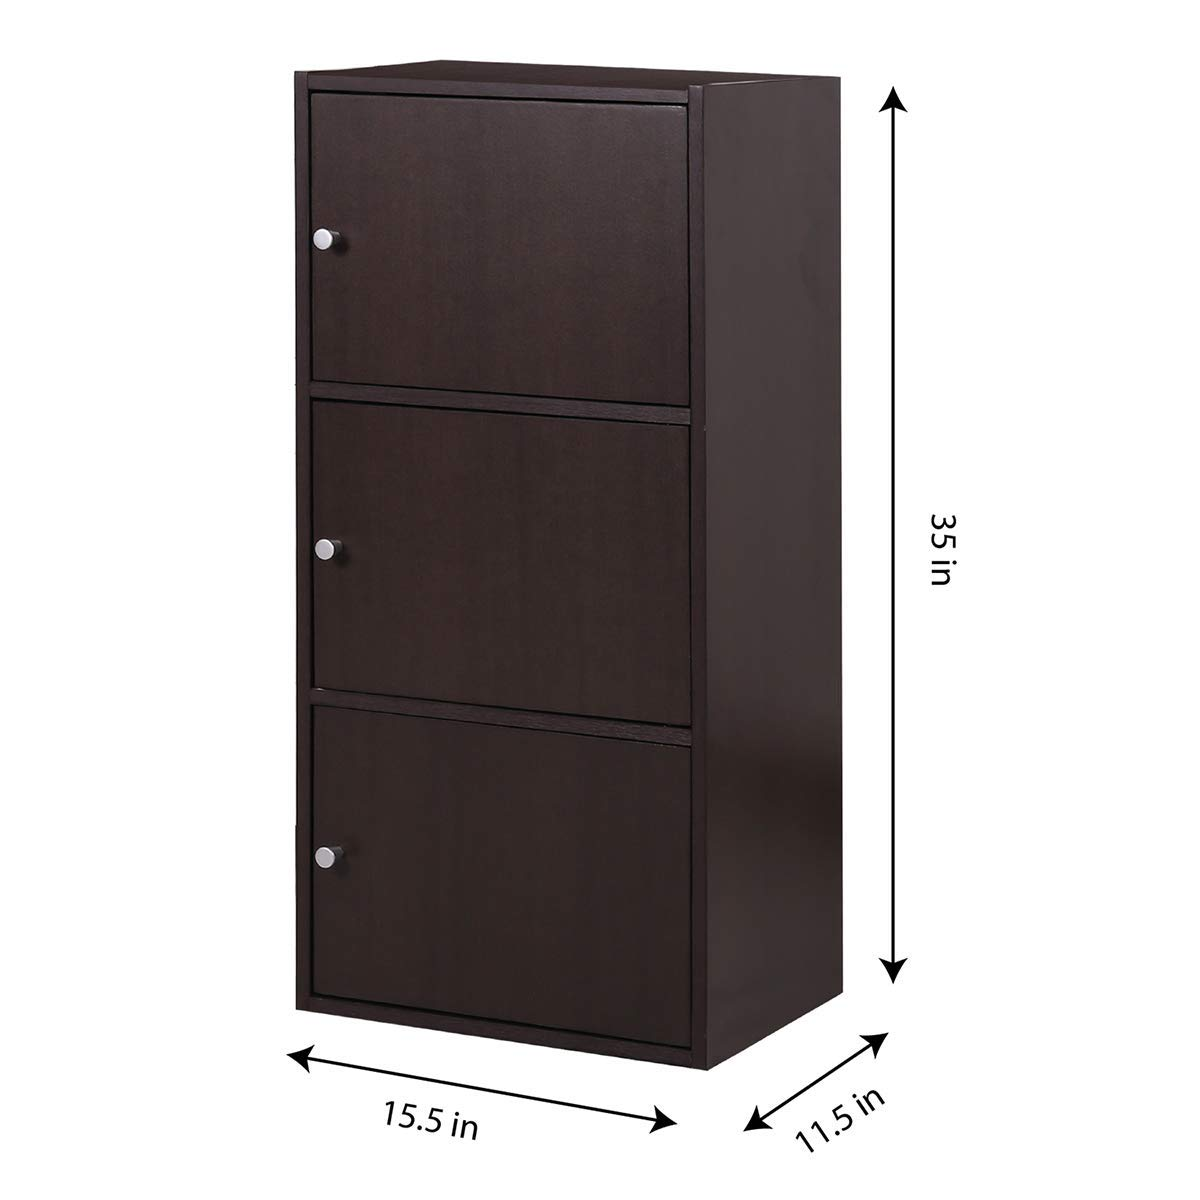 Multifunctional Storage-Cabinet with 3 Magnetic Doors Classic Modern Bookcase Home Office Vertical File Cabinets, Espresso Brown-CAS011 by Coavas (Image #4)